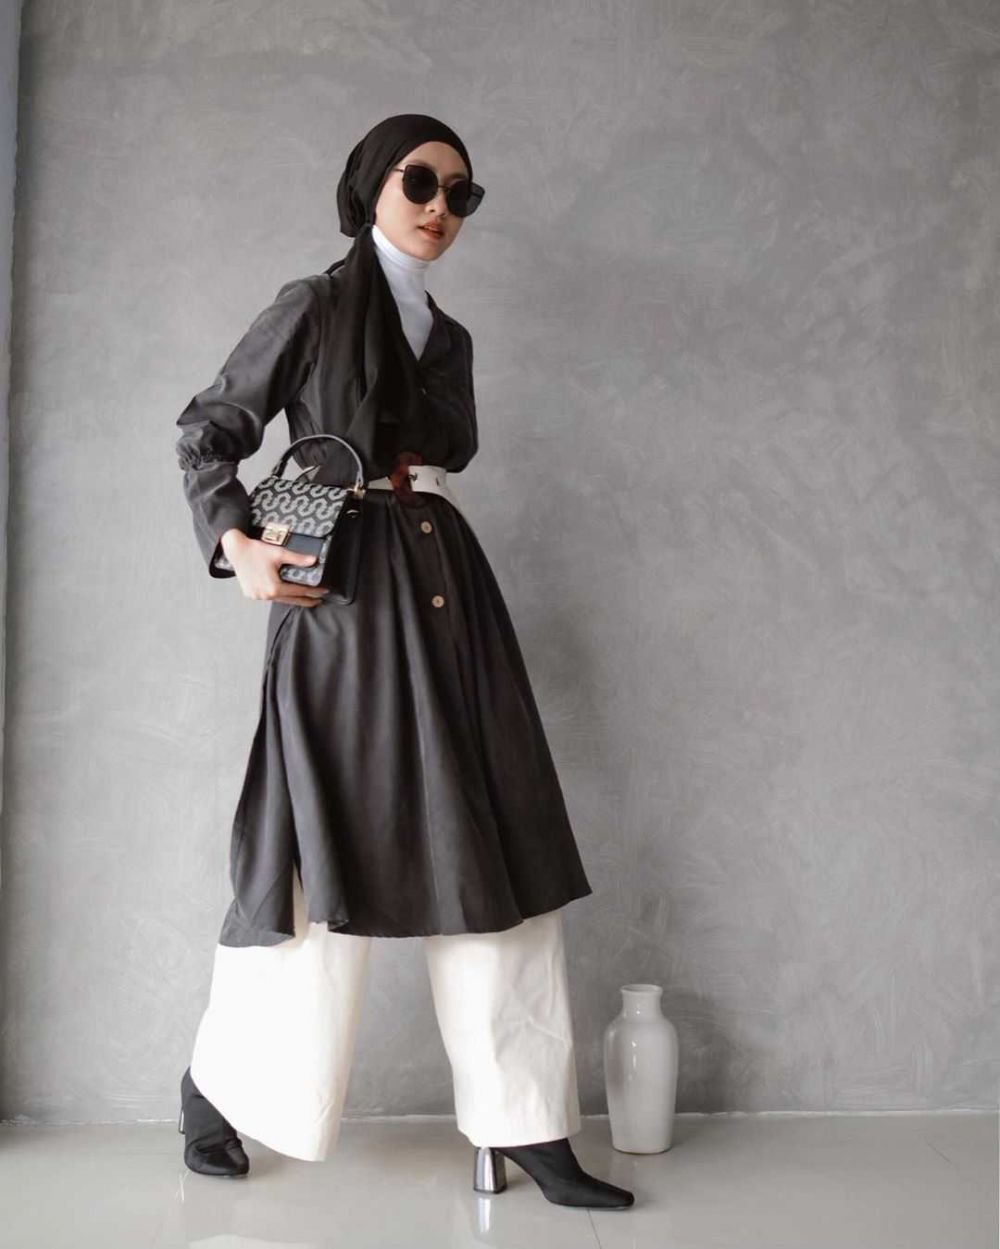 Classy, 10 Ide Mix and Match Outfit Monochrome dan Hijab ala Inas Rana